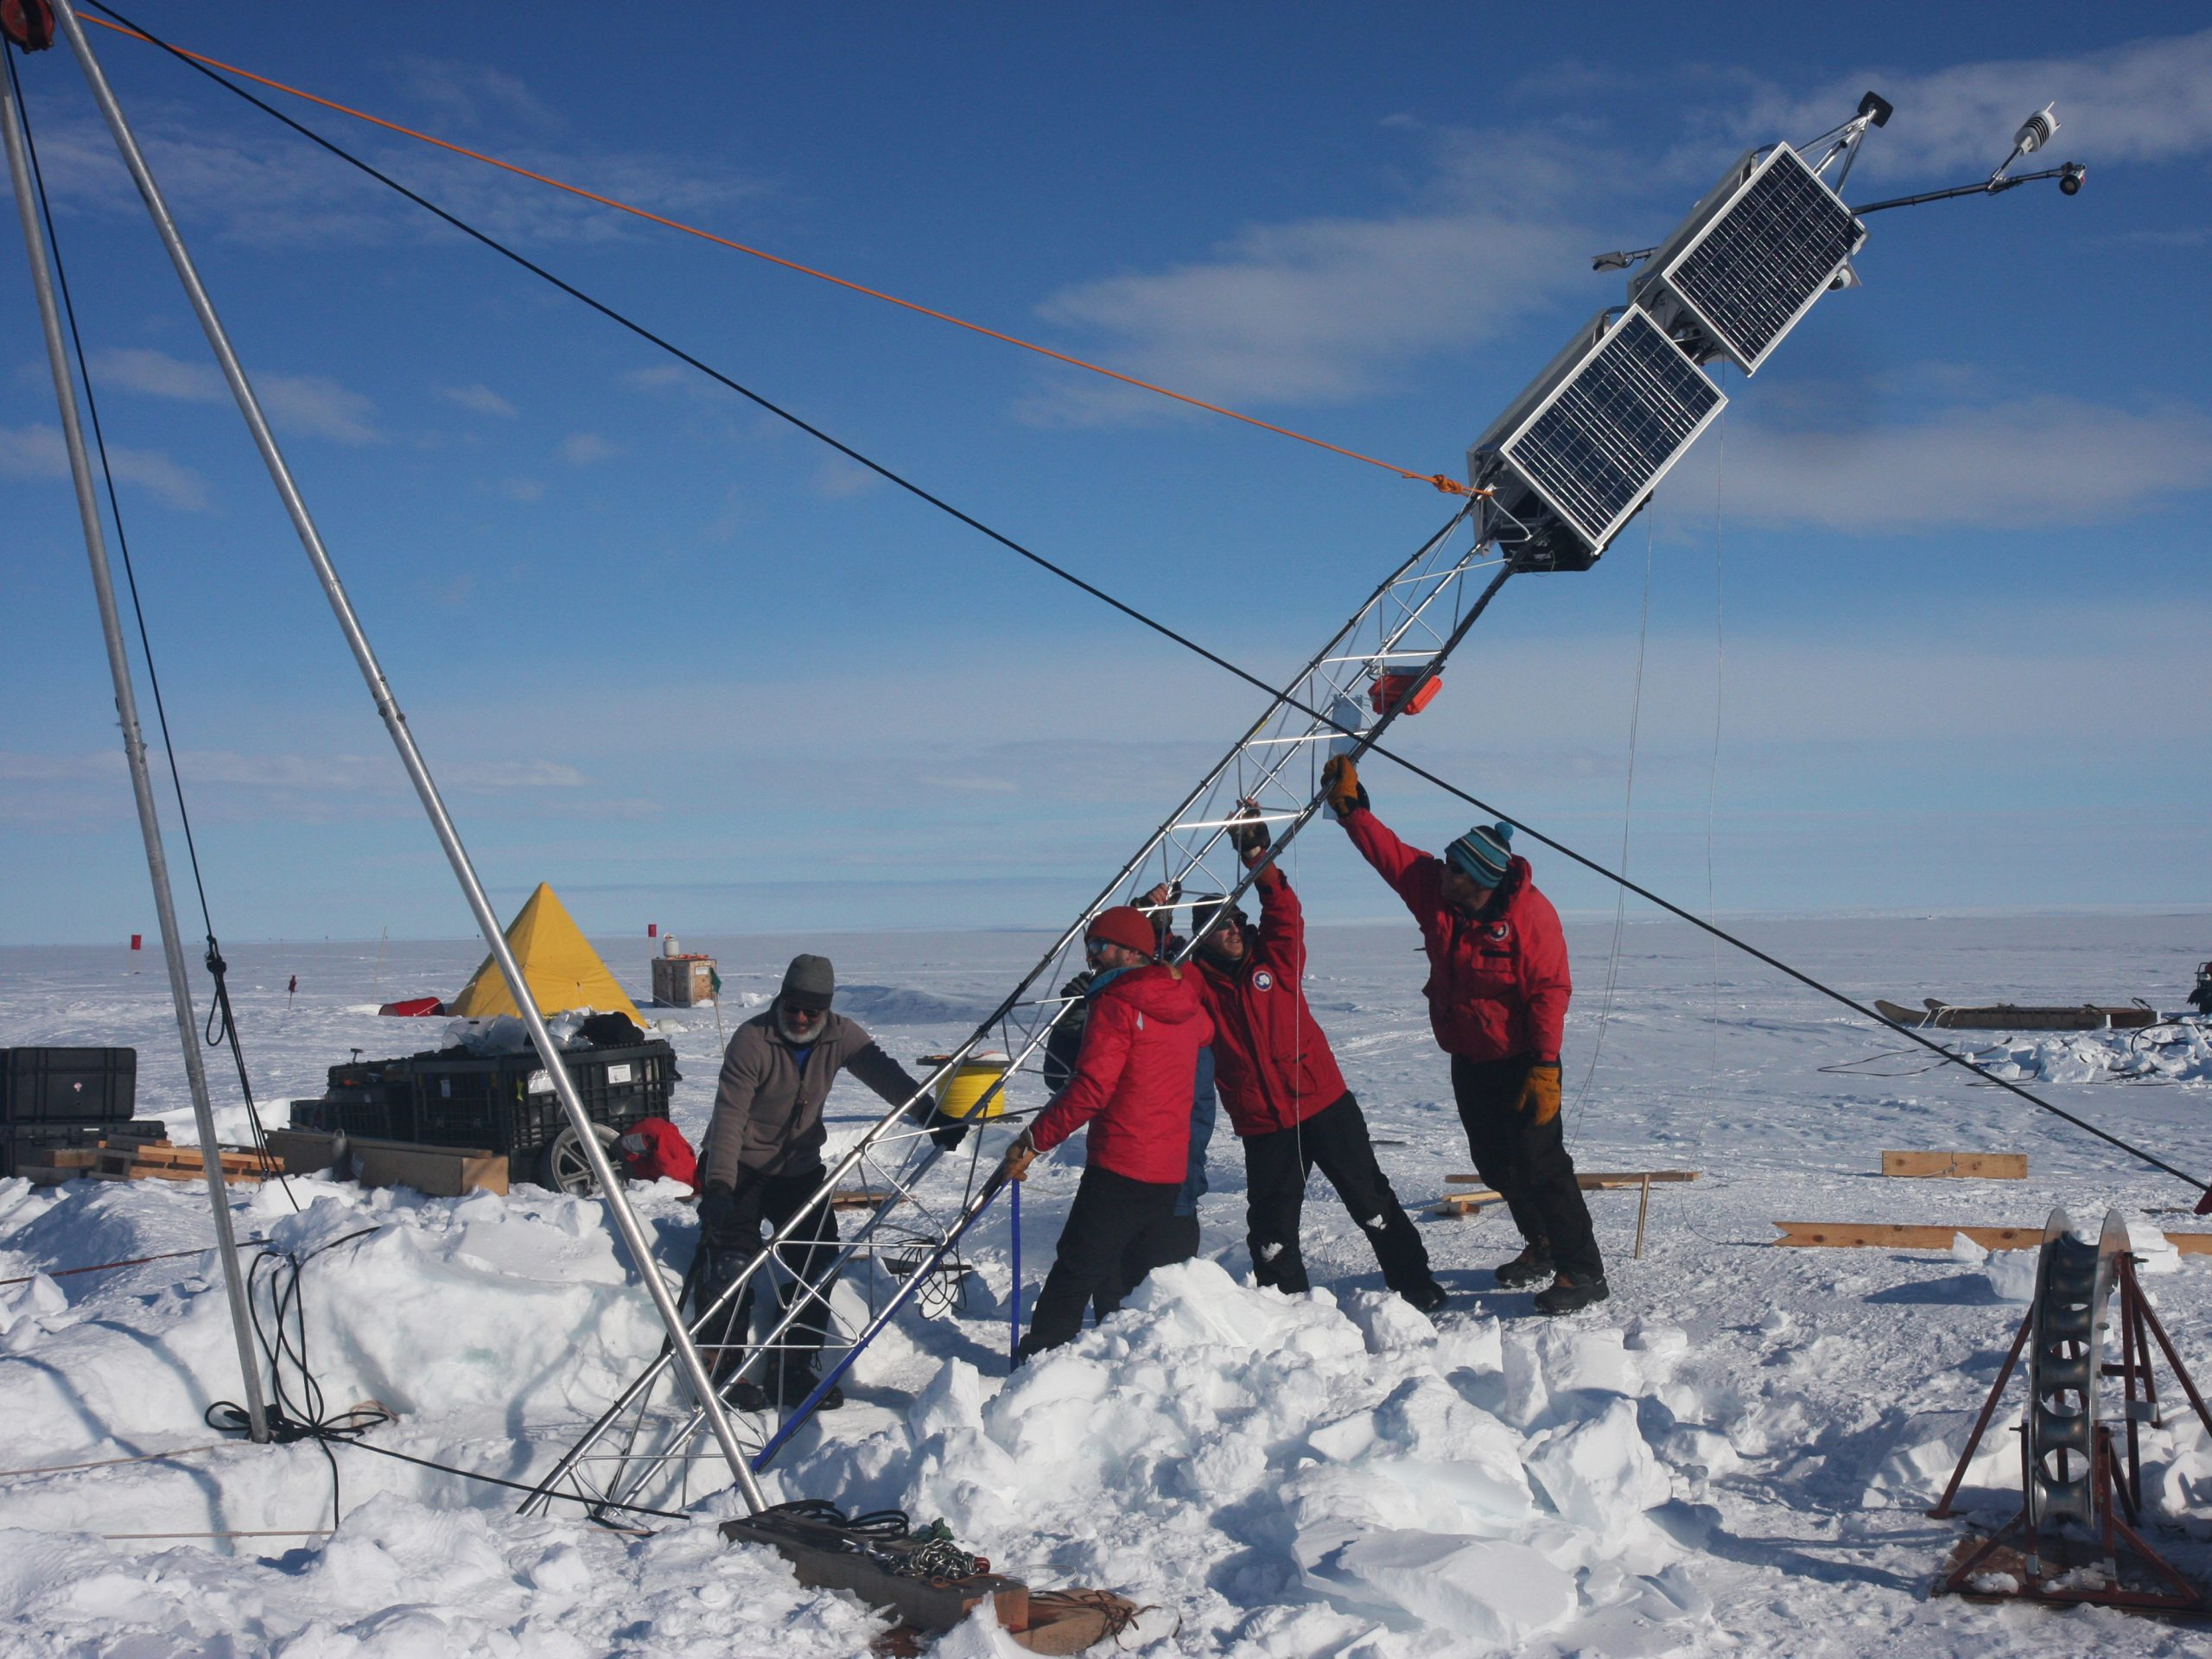 After instruments were lowered through a hole in the Thwaites Ice Shelf, a tower was raised to collect weather observations and to transmit data back home, via satellite. Photograph by Douglas Fox